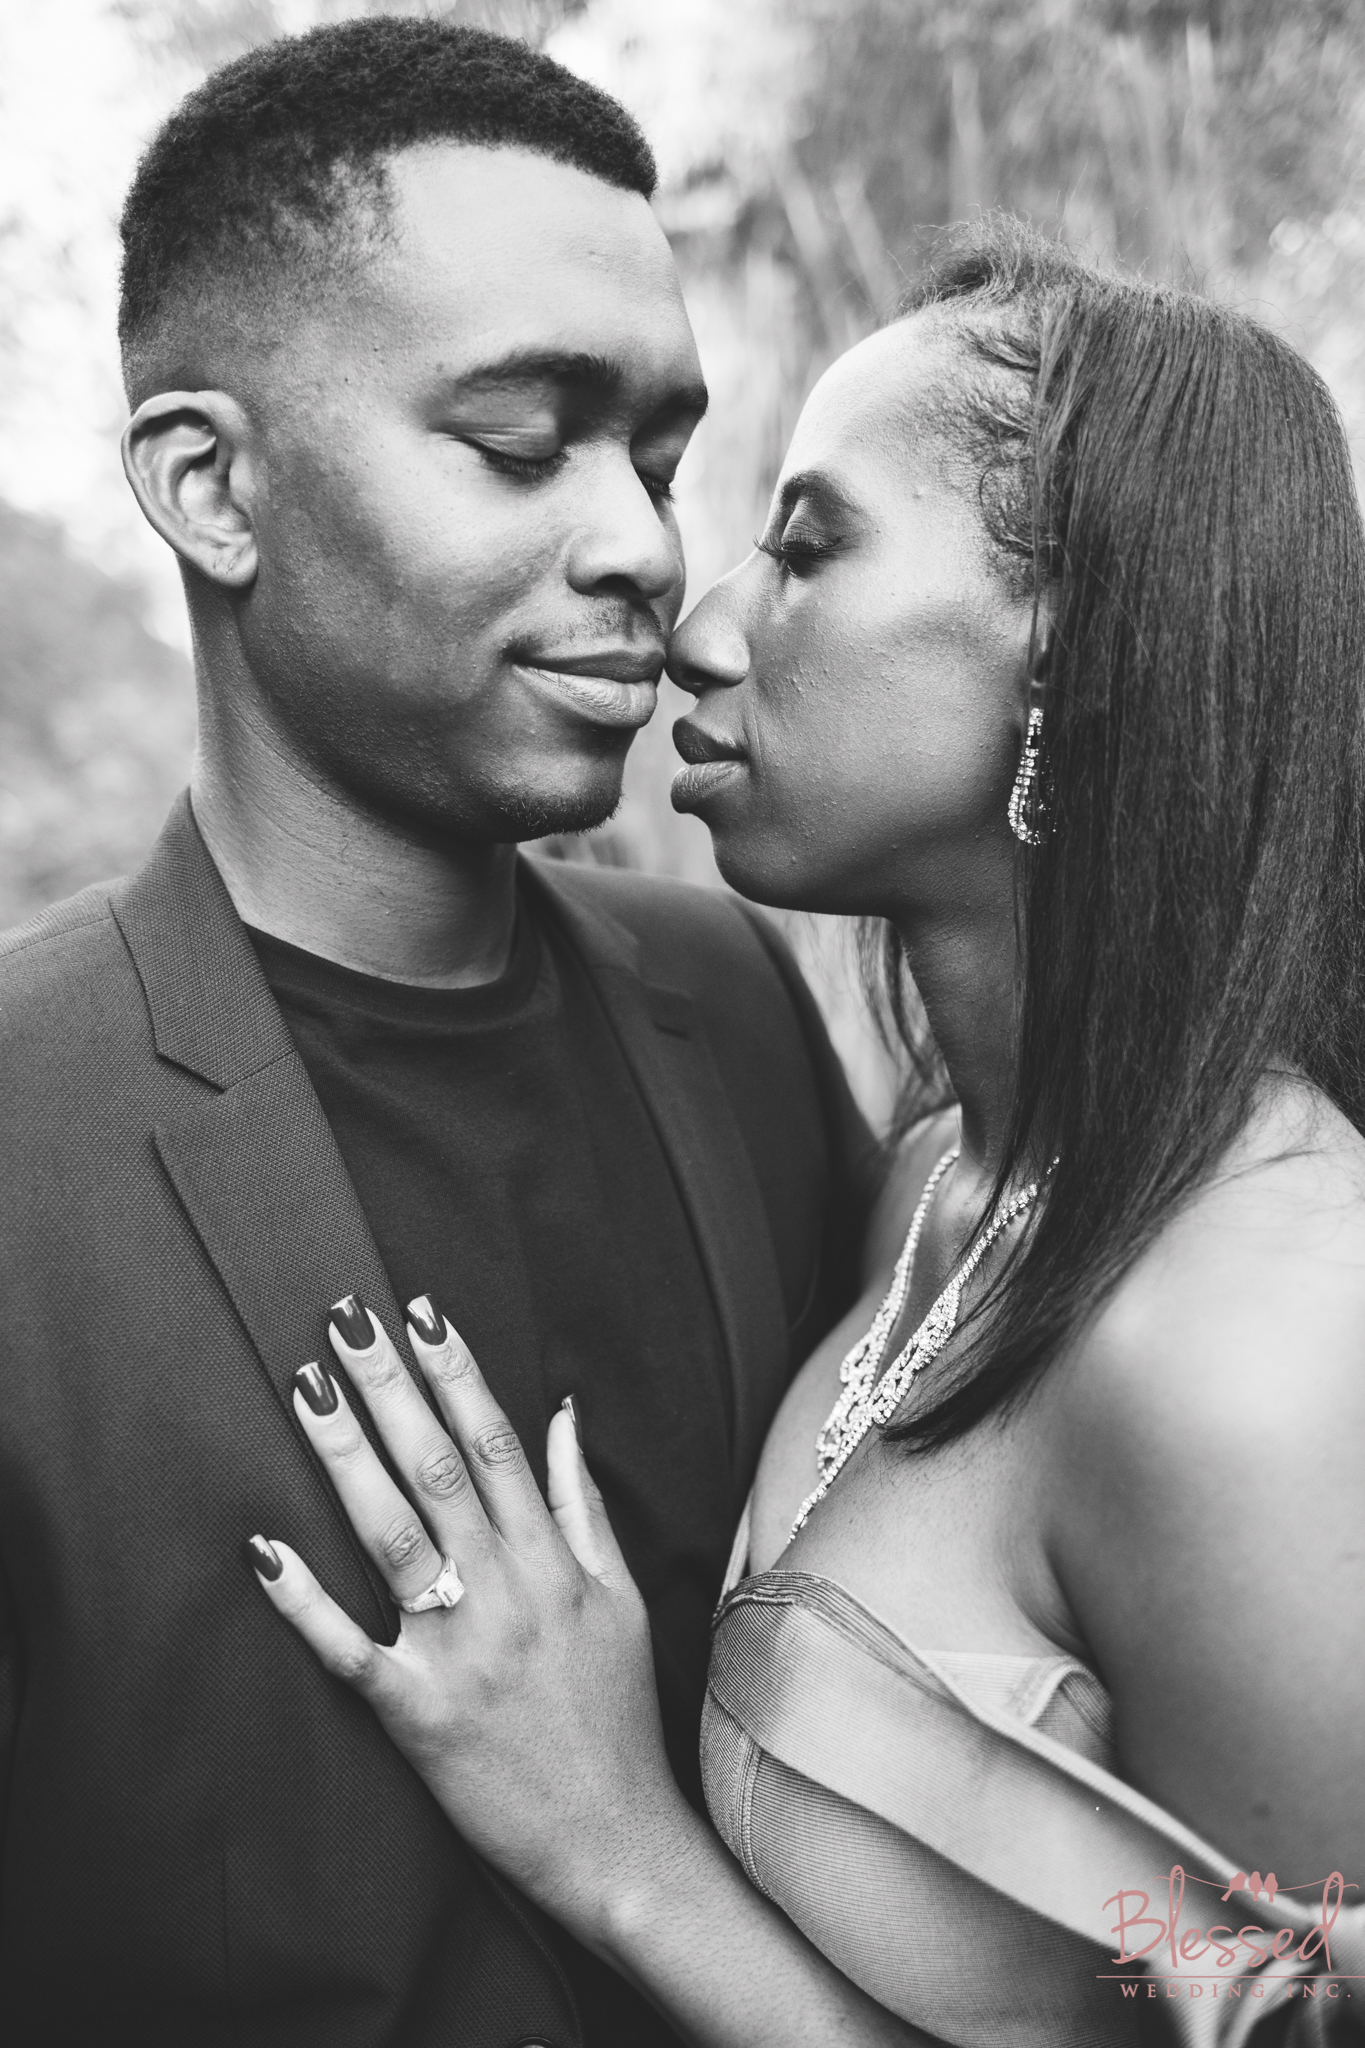 Marian Bear Park Engagement Session by Blessed Wedding Photography  (22 of 25).jpg